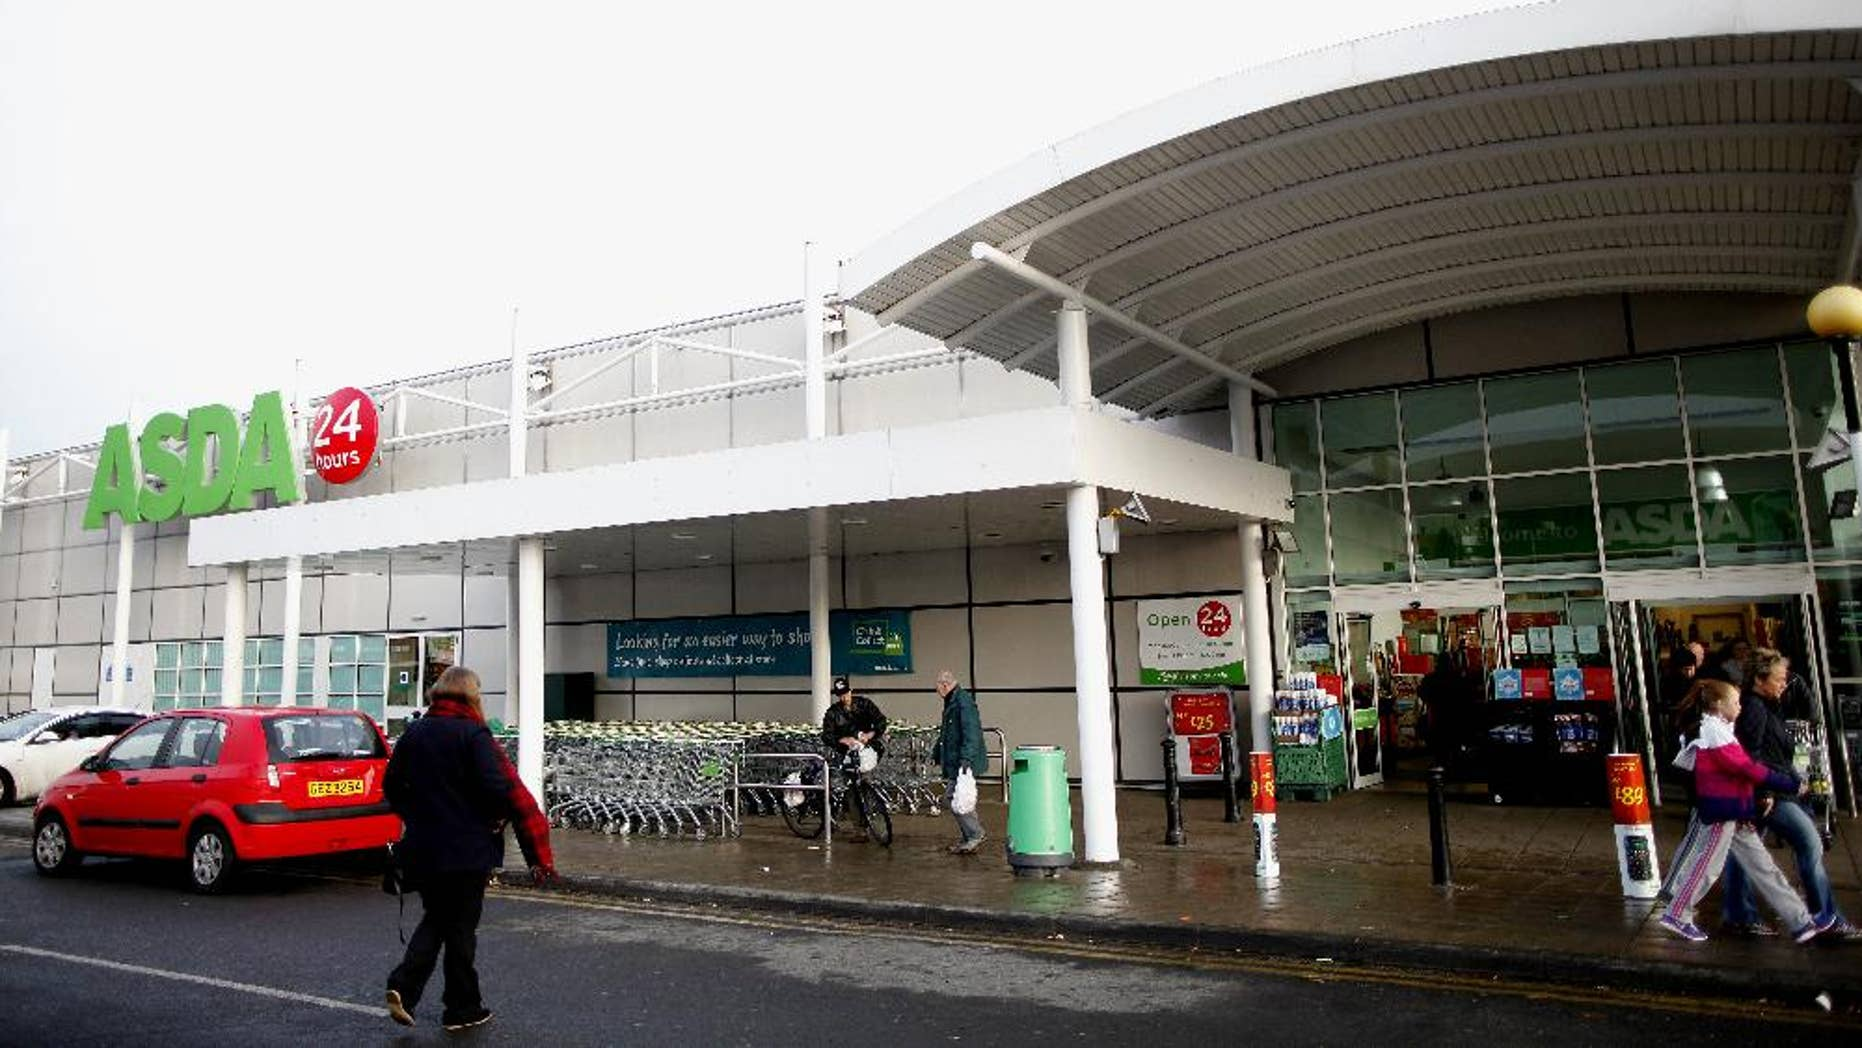 FILE - This is a  Friday, Nov. 29, 2013 file photo of shoppers at the entrance to Asda supermarket store in West Belfast, Northern Ireland after  at least one person was injured and taken to hospital from the store earlier Friday, as shoppers rushed to get their hands on sale deals for their Black Friday event. Halloween and Mother's Day have become staples of the U.K. shopping calendar. Now Black Friday looks as though it may be the next big retail import from the United States. Shopping on the day after Thanksgiving is becoming a thing in Britain, too  even if the country doesn't celebrate Turkey day thanks mainly to the marketing efforts of major retailers. Asda, is owned by U.S. retail giant Walmart, (AP Photo/Peter Morrison, FILE)